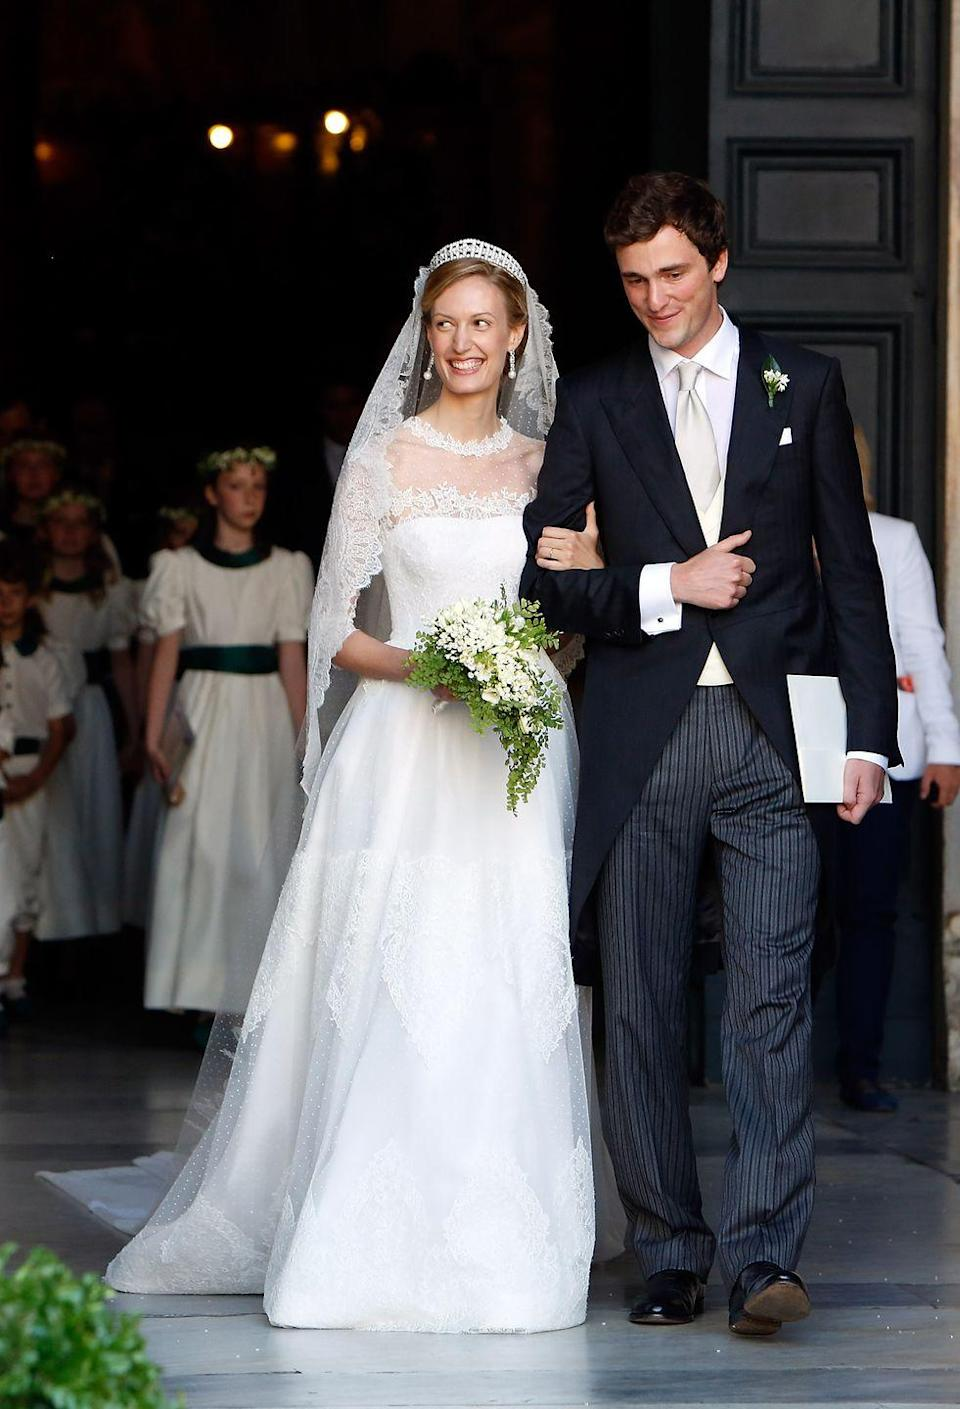 "<p>Prince Amedeo of Belgium wed his Italian fiancée in 2014 in Rome. A journalist for <span class=""redactor-unlink"">Bloomberg News</span>' cultural section, she and the prince met while they were students together in London. </p>"